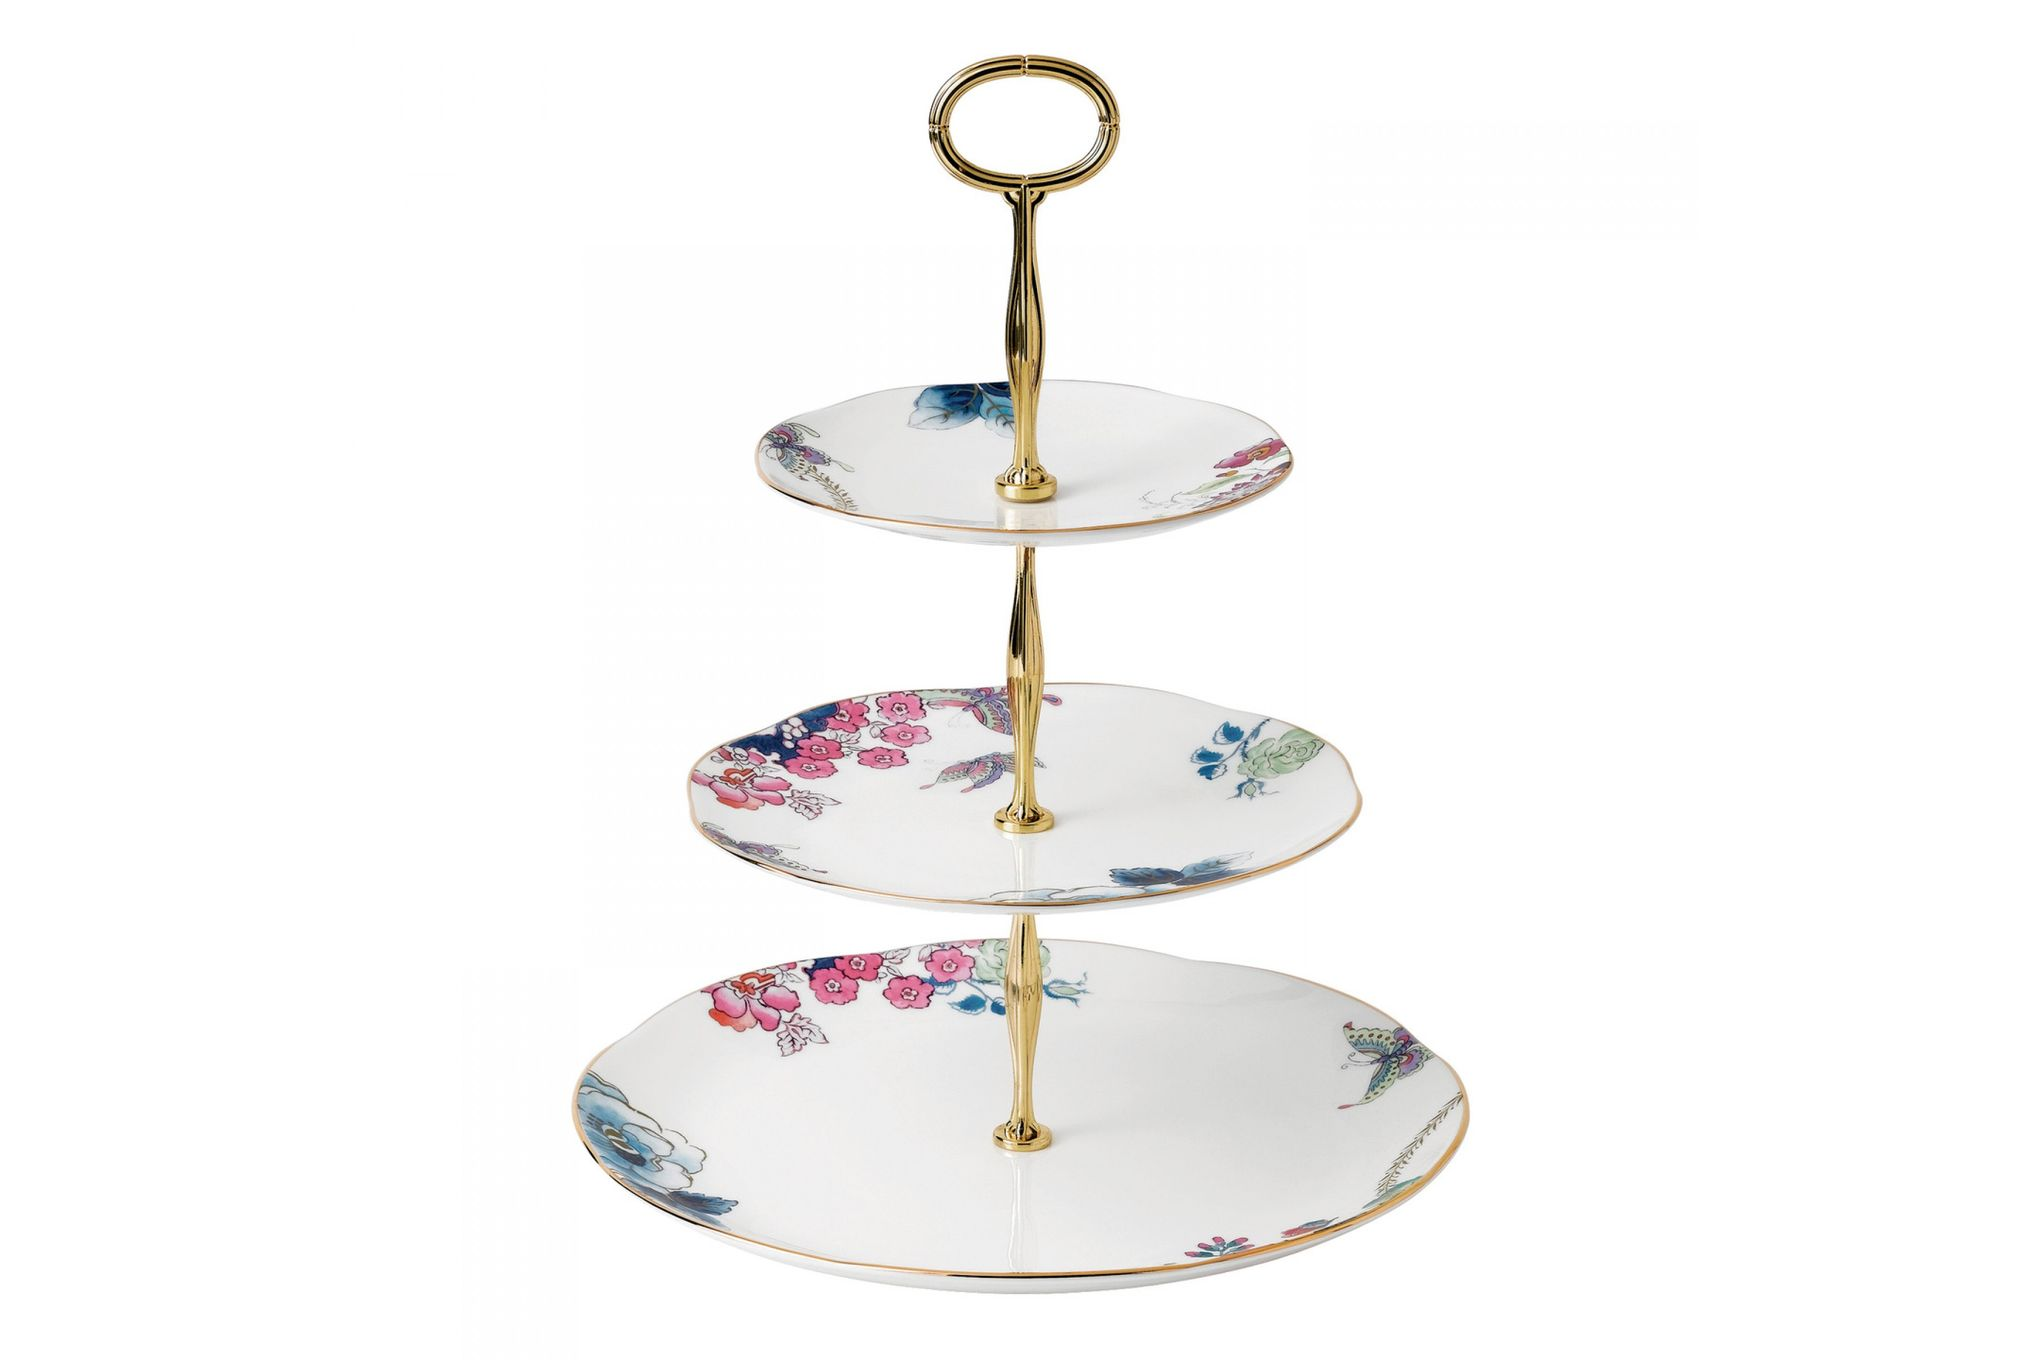 Wedgwood Butterfly Bloom 3 Tier Cake Stand thumb 1